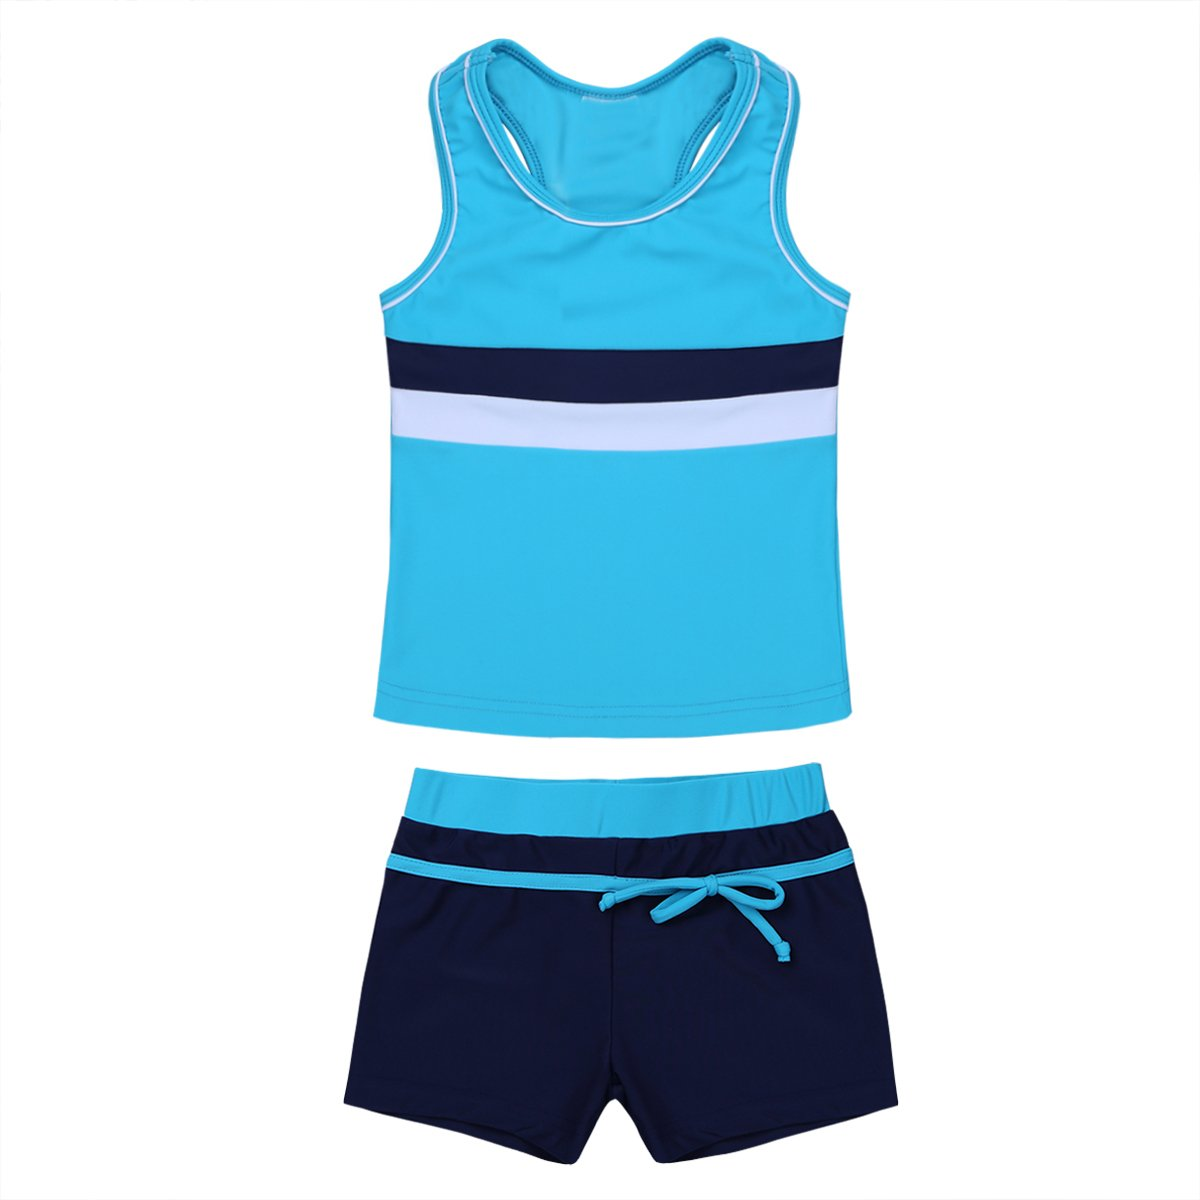 ranrann Kids Girls Two-Piece Sleeveless Tank Top with Bottoms Tankini Outfits Gymnastic Swimwear Swimsuit Bathing Suit